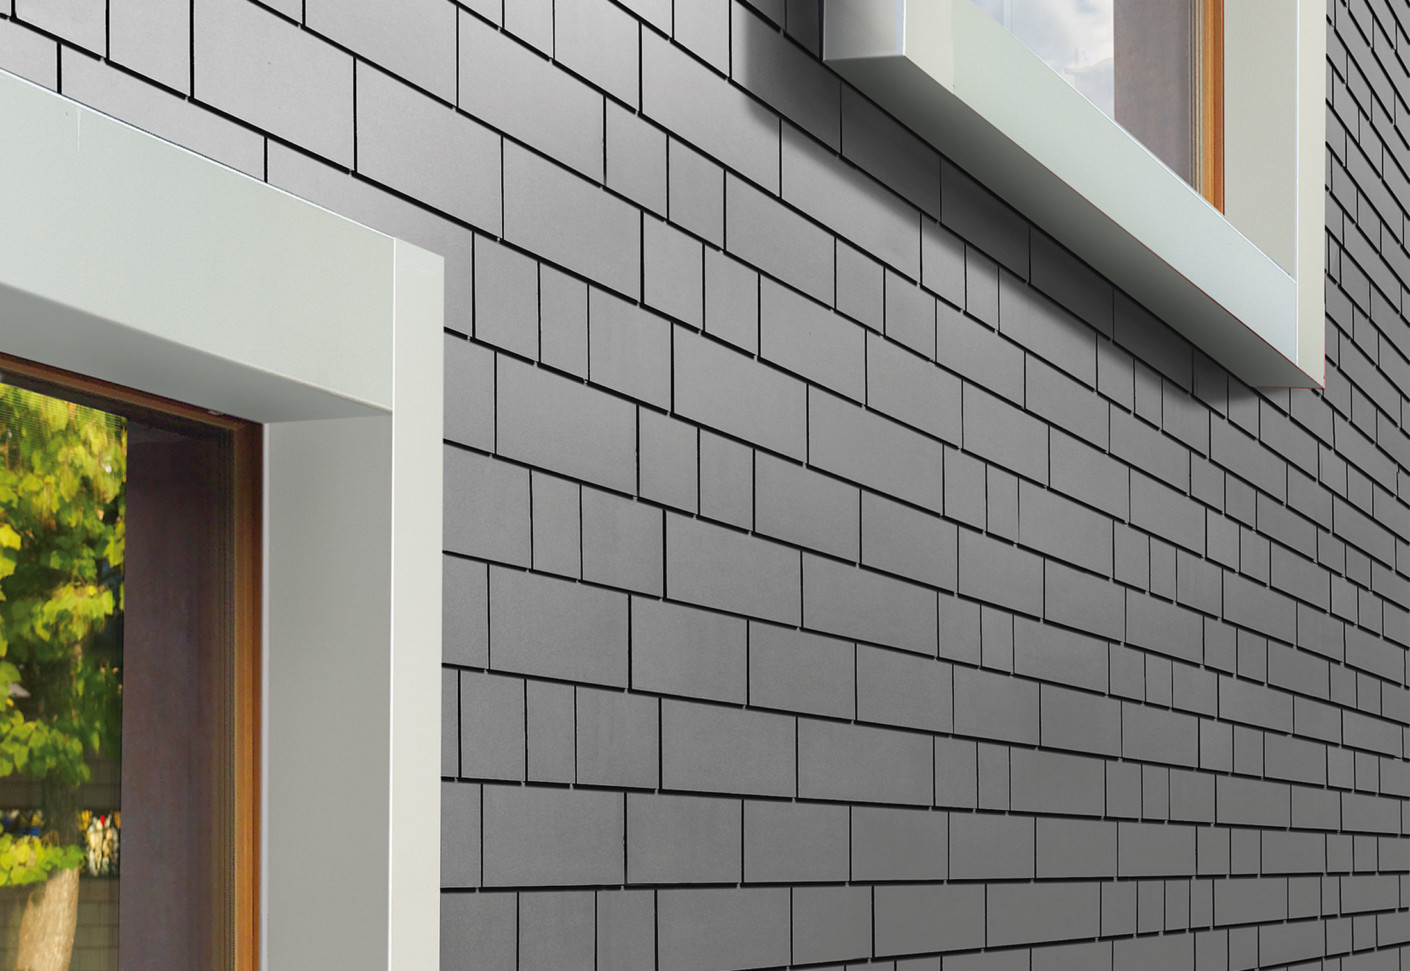 Fiber Cement Panels For Exterior : Fiber cement panels small format by eternit switzerland